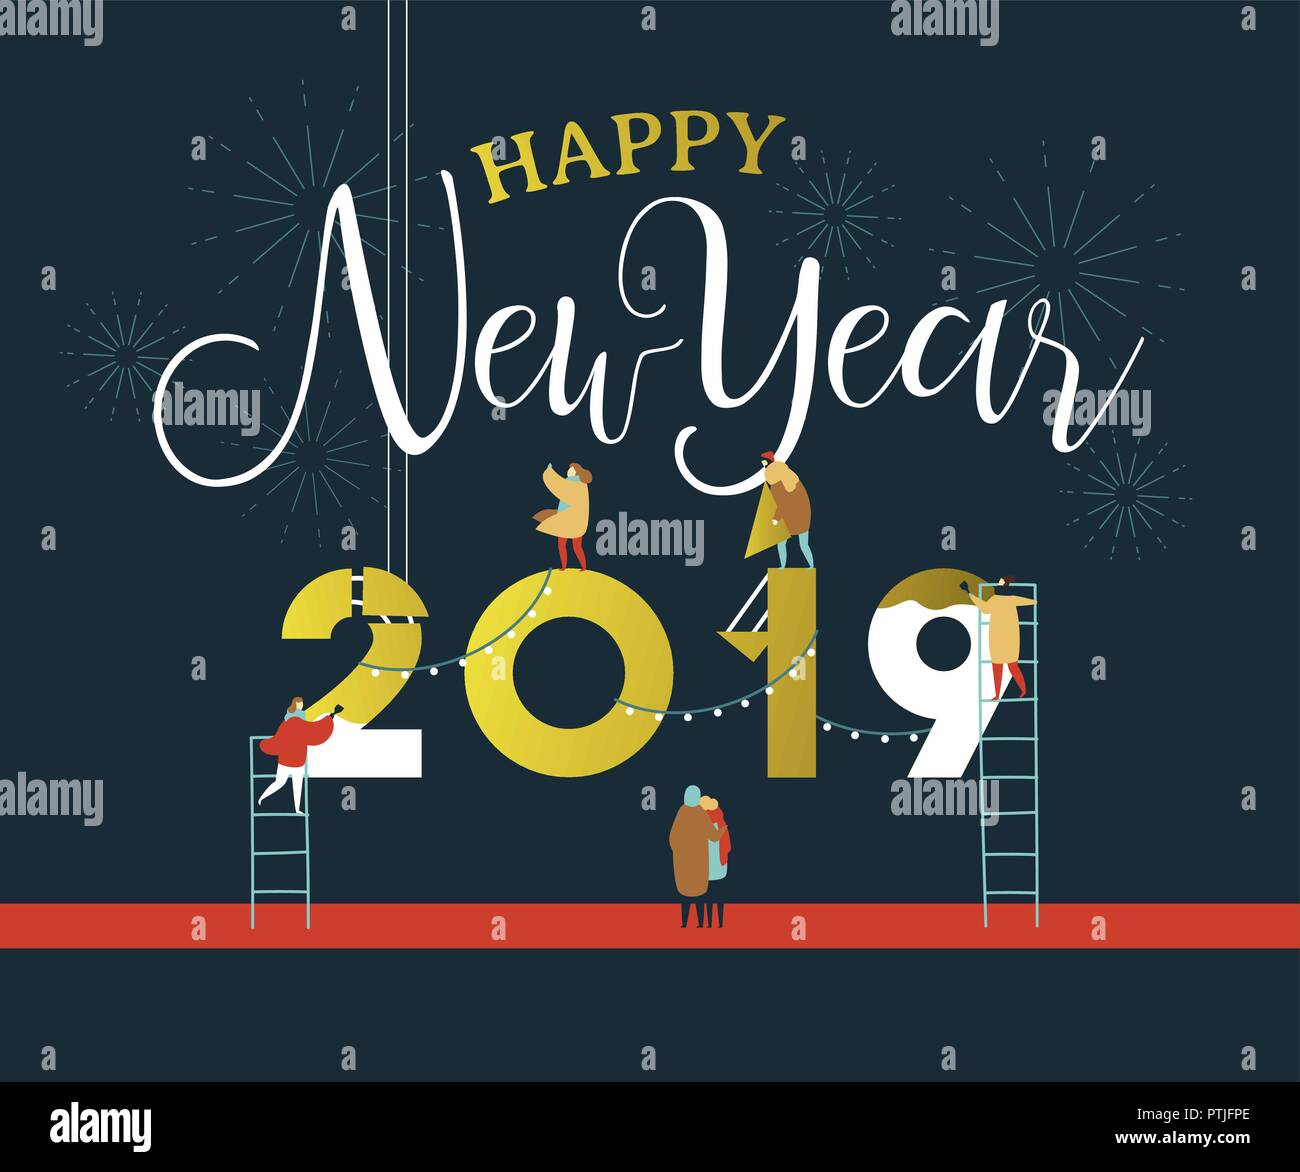 happy new year greeting card illustration for celebration event with